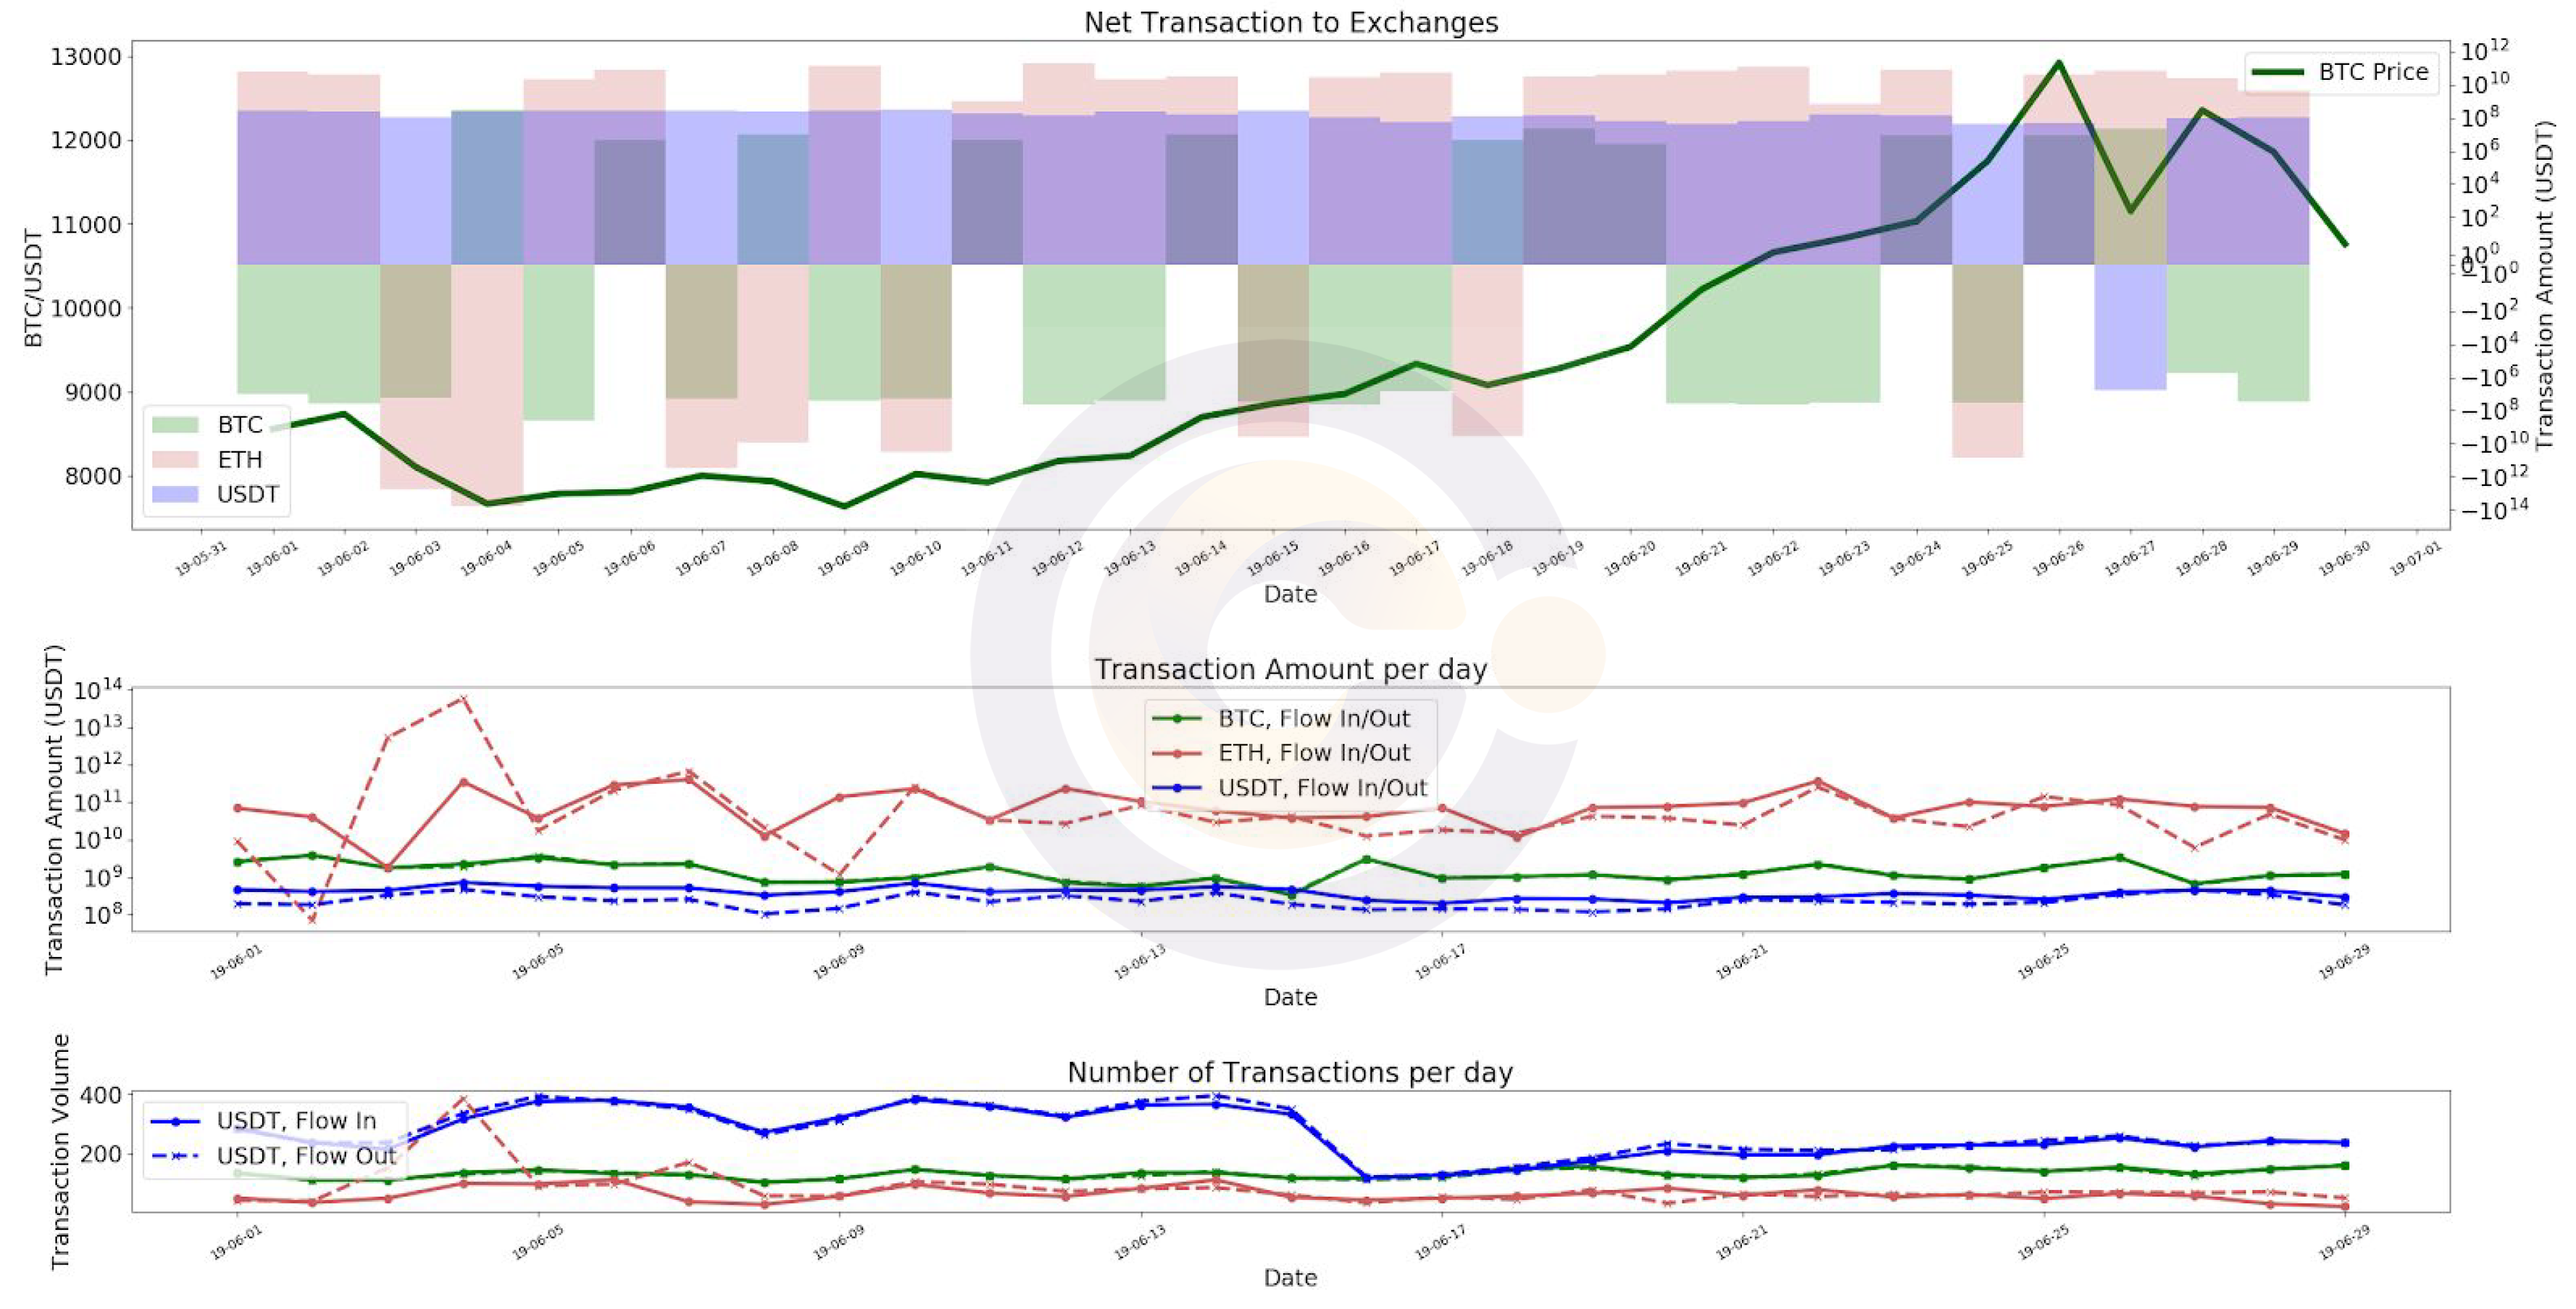 Cryptocurrency Blockchain Transaction - Price versus net transaction correlation BTC, ETH, USDT